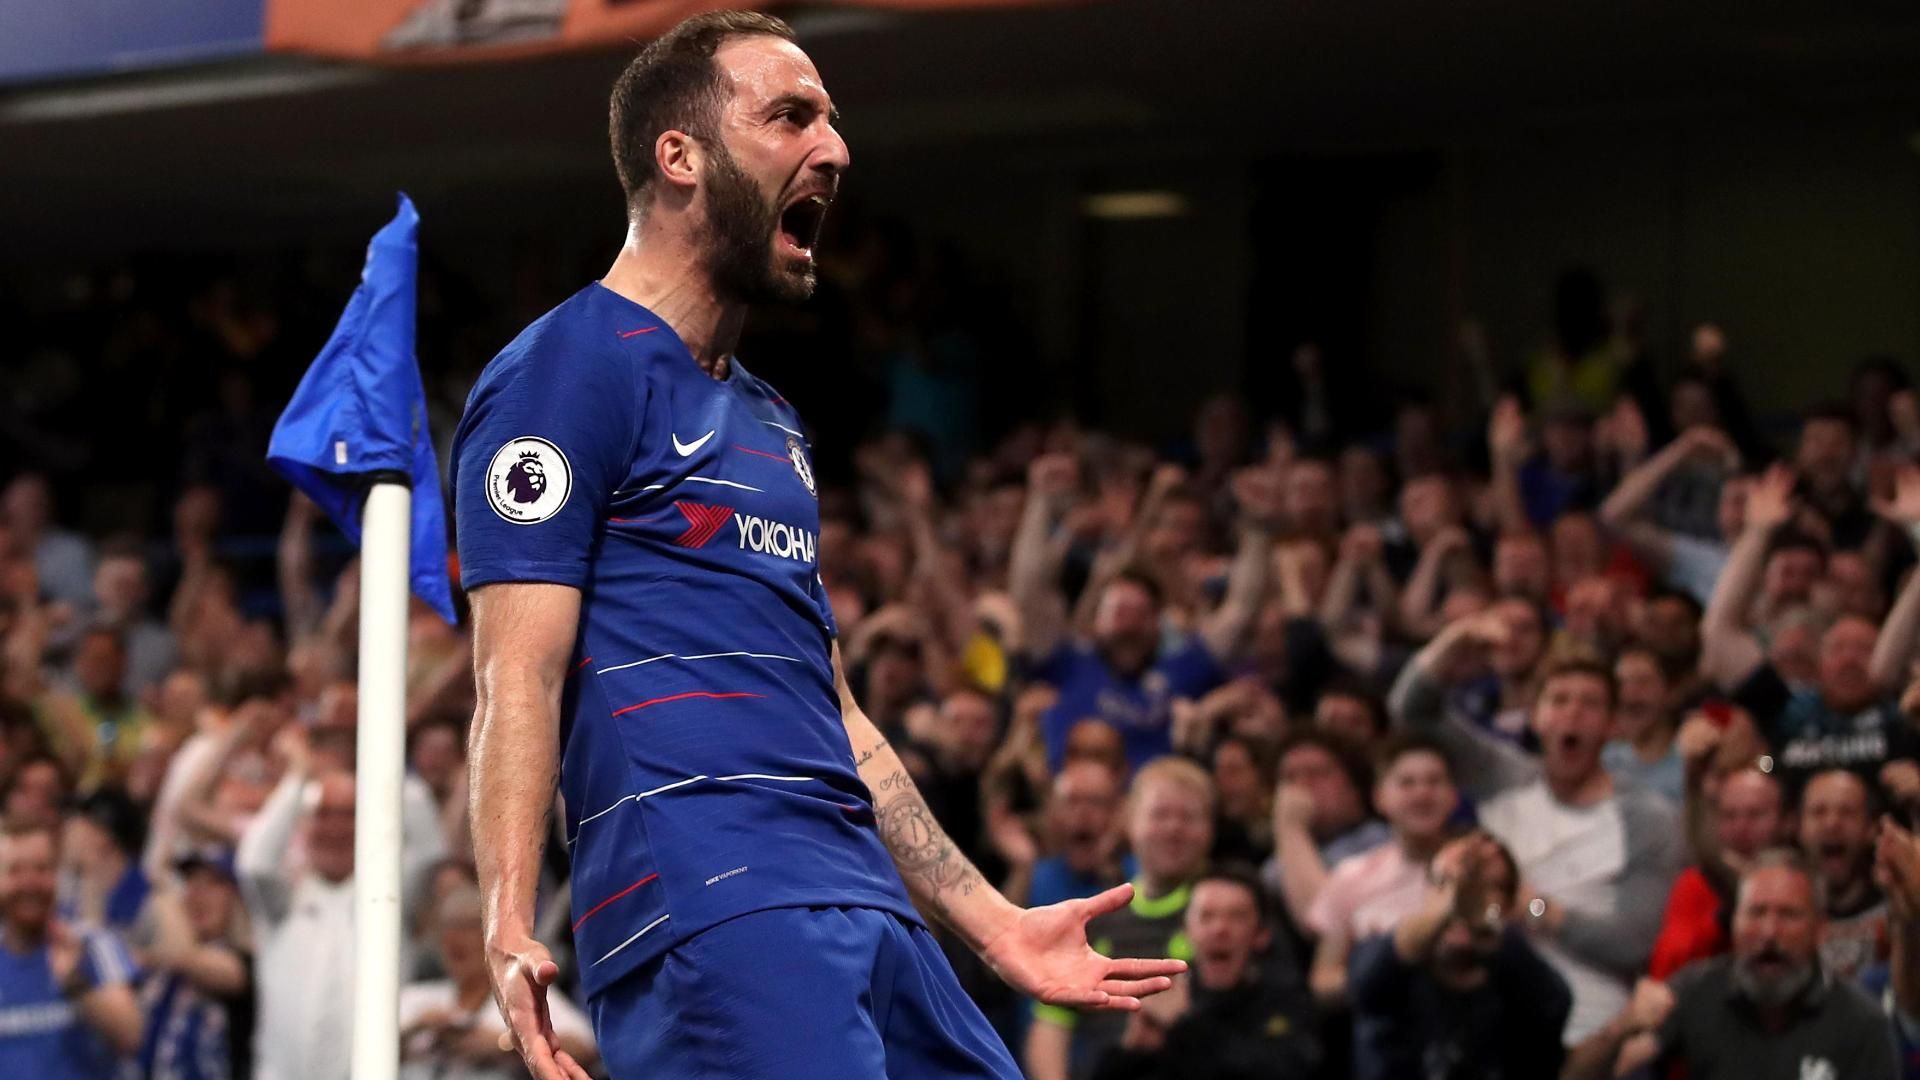 Higuain puts Chelsea in front with powerful strike